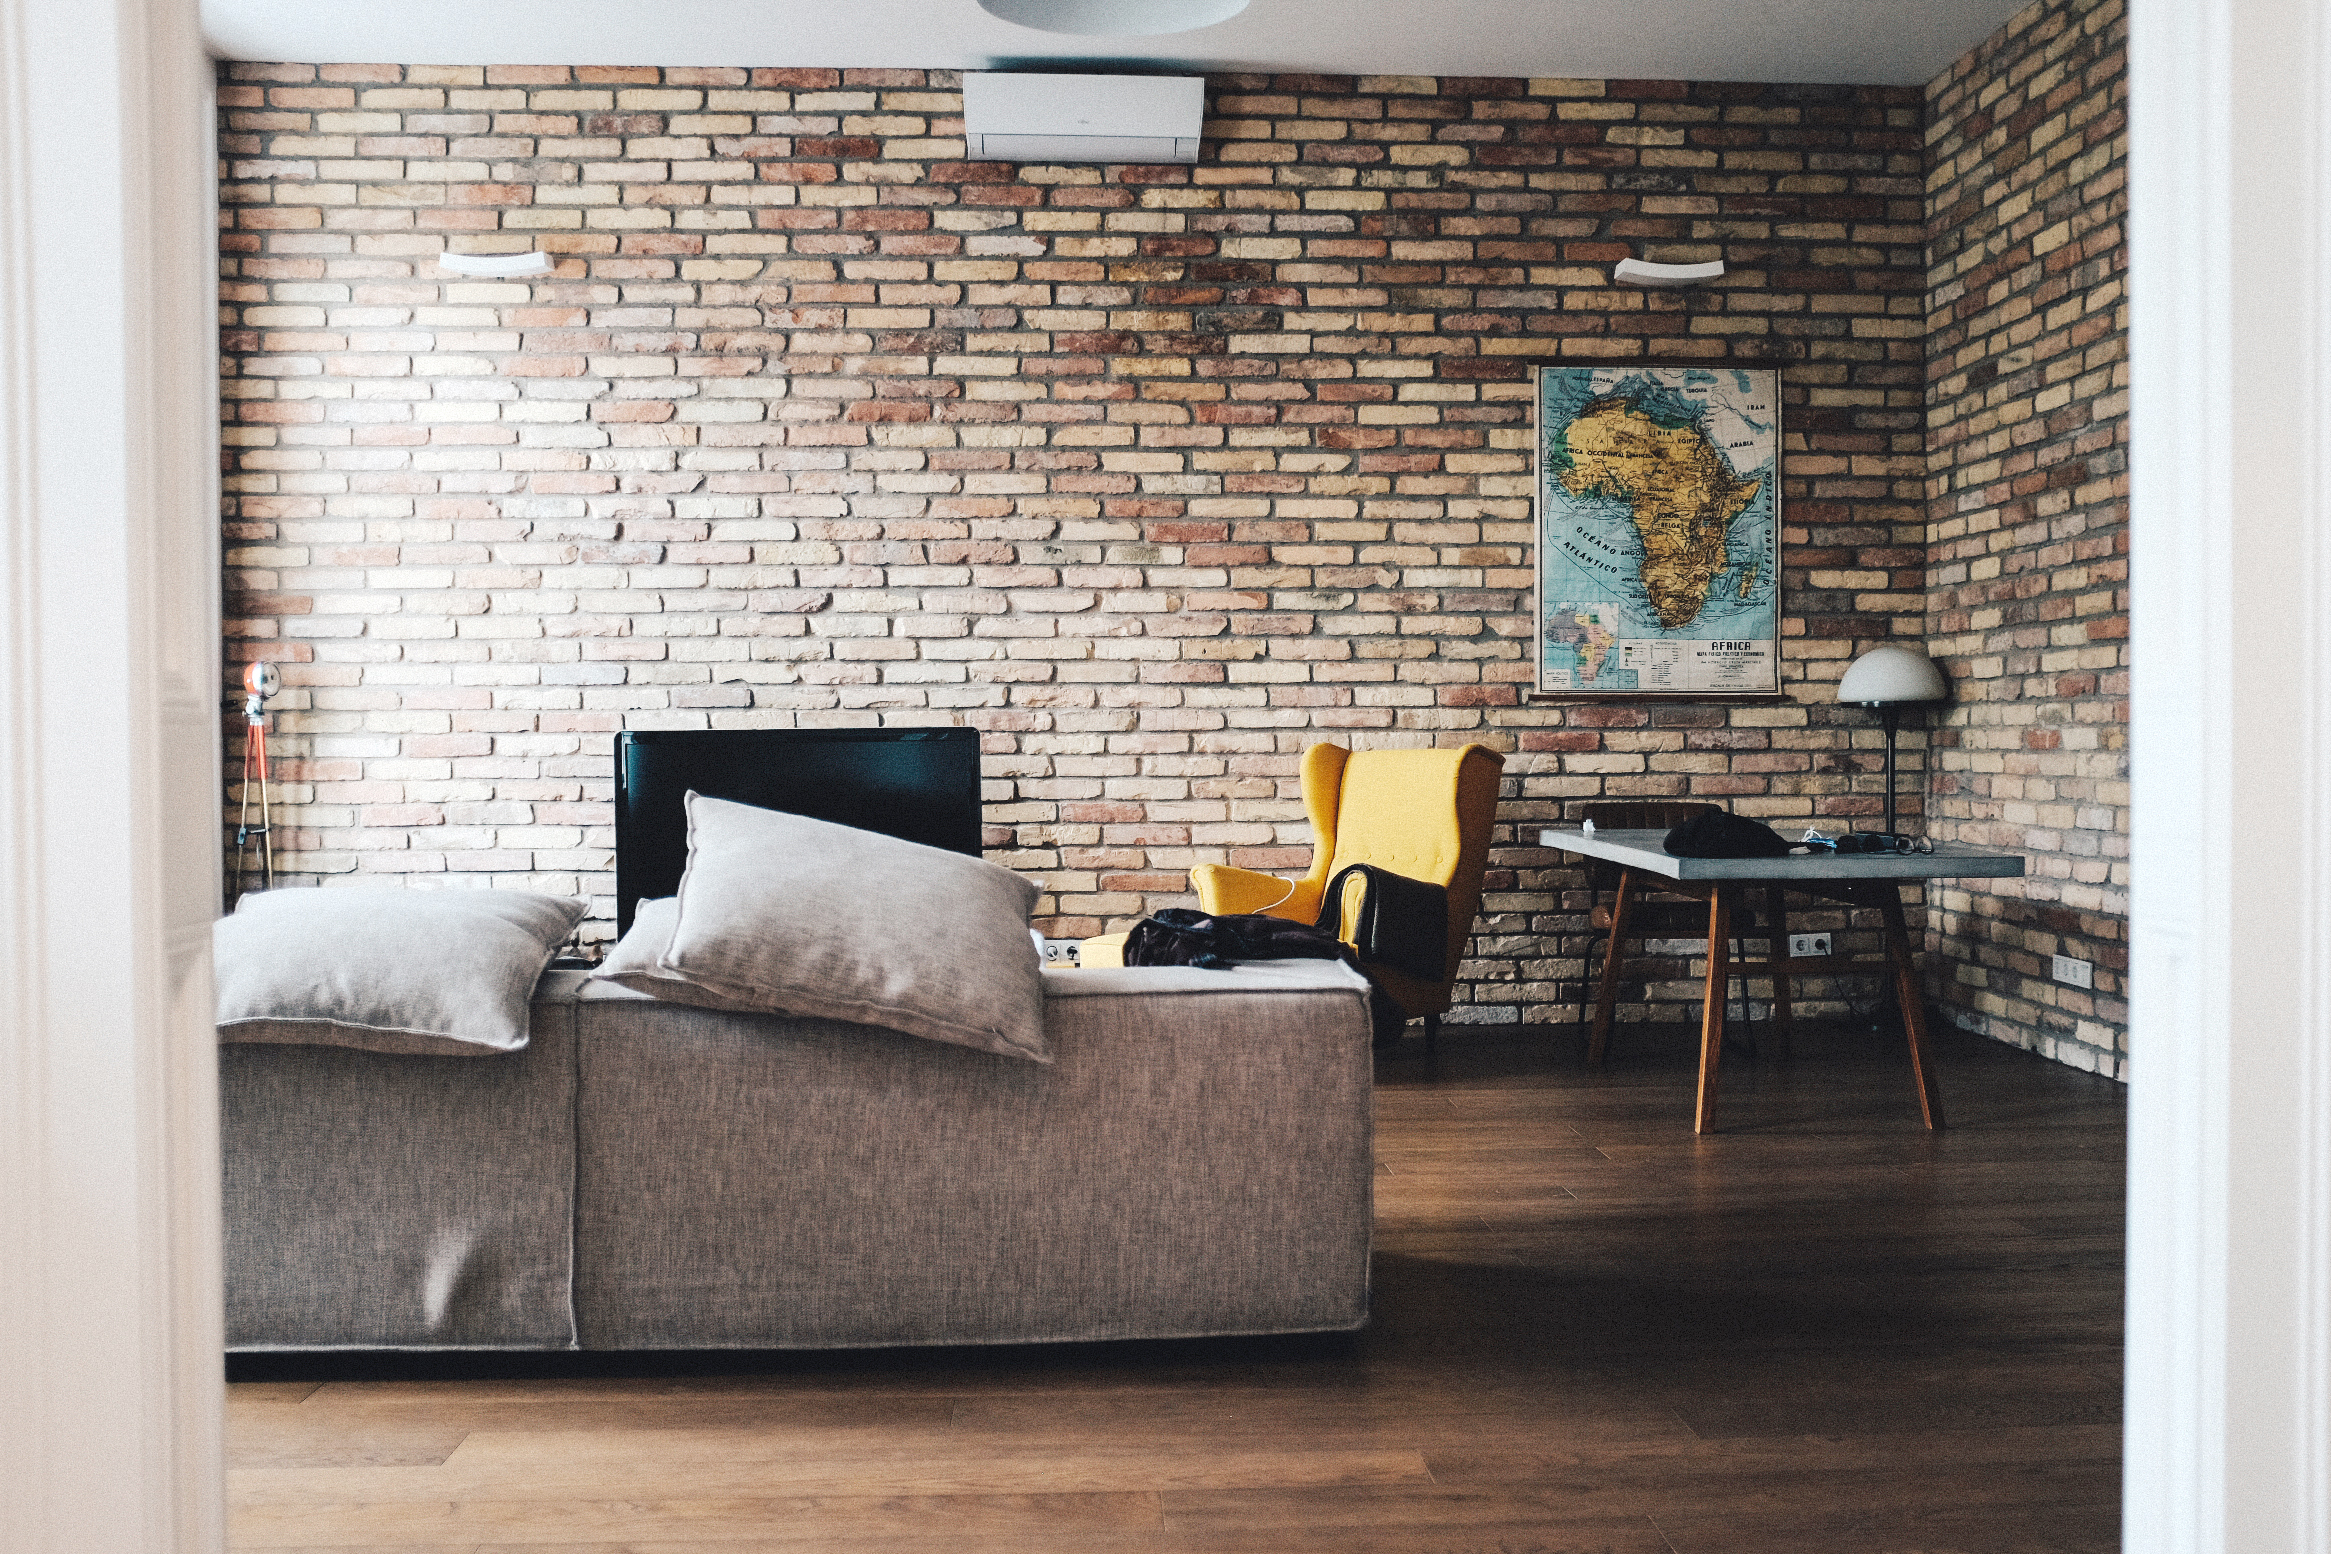 Wall to Wall Exposed Brick Living Room with Couch, Yellow Chair, Modern Table, Map of Africa on the Wall